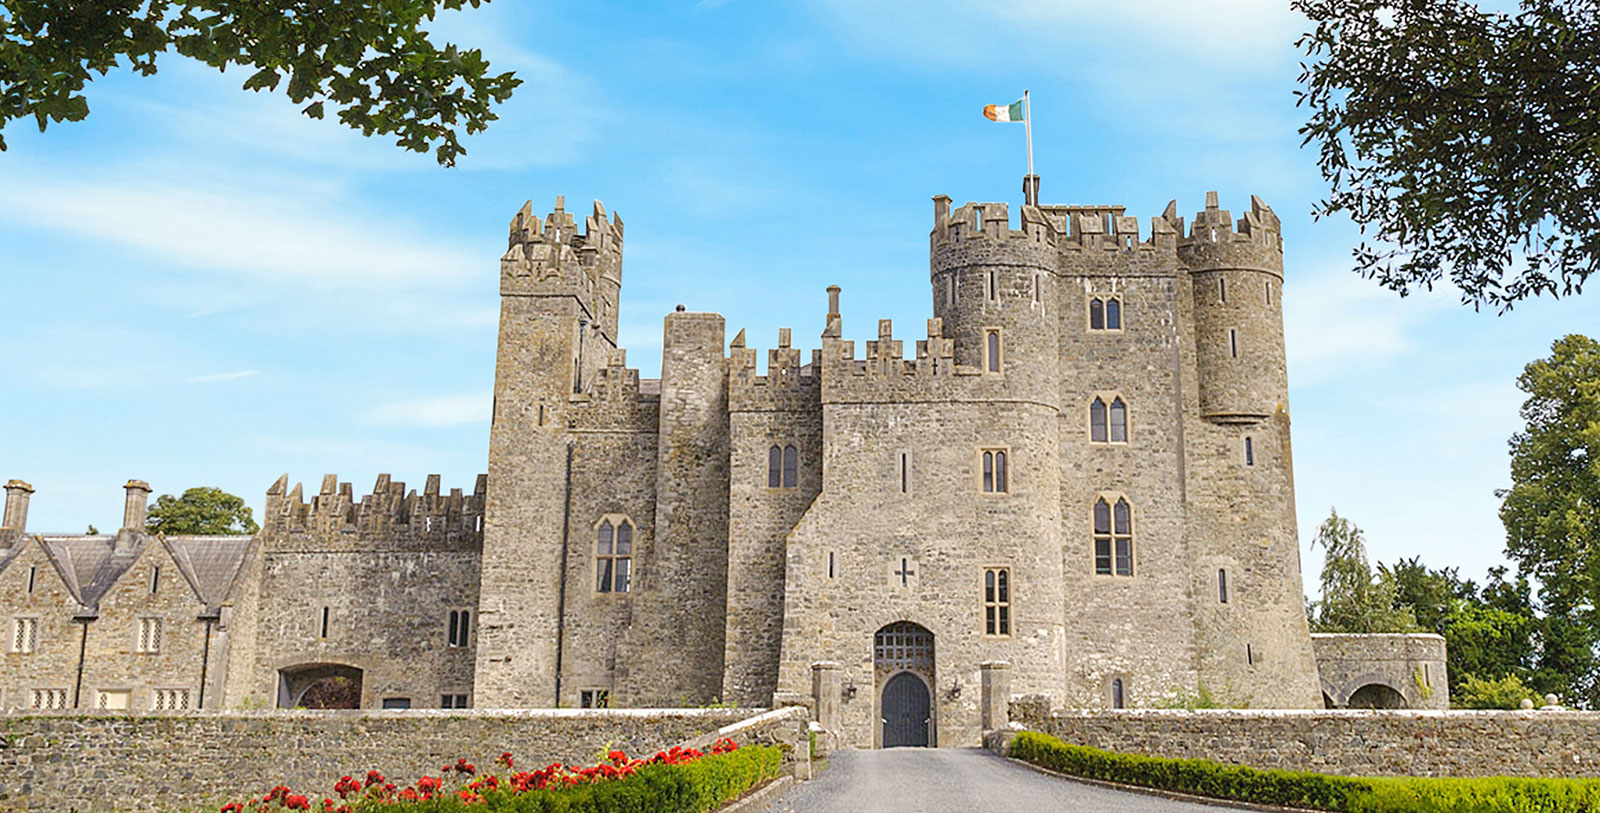 Image of Hotel Exterior at Kilkea Castle, 1180, Member of Historic Hotels Worldwide, in Kildare, Ireland, Special Offers, Discounted Rates, Families, Romantic Escape, Honeymoons, Anniversaries, Reunions